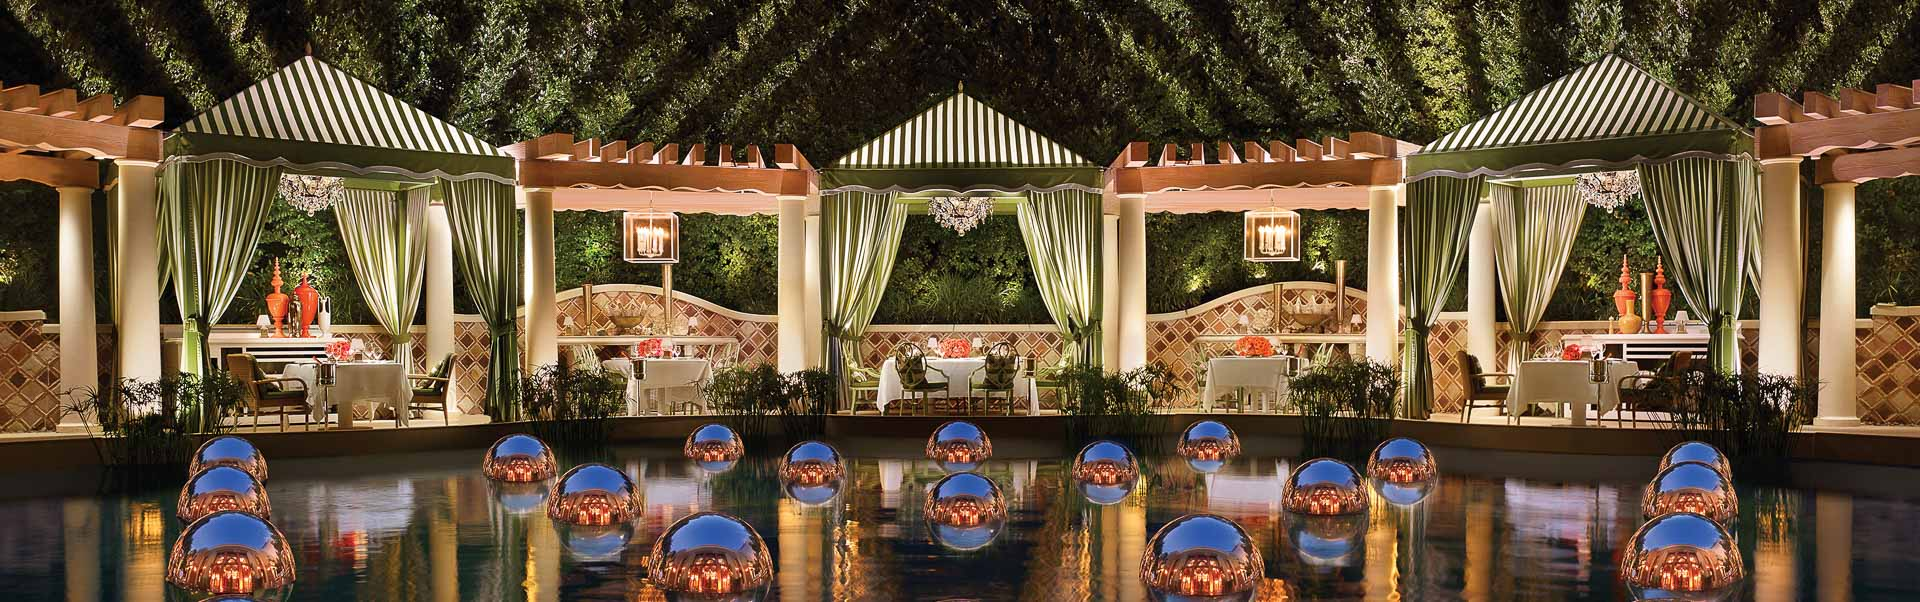 Las Vegas Restaurants | Award Winning | Wynn & Encore